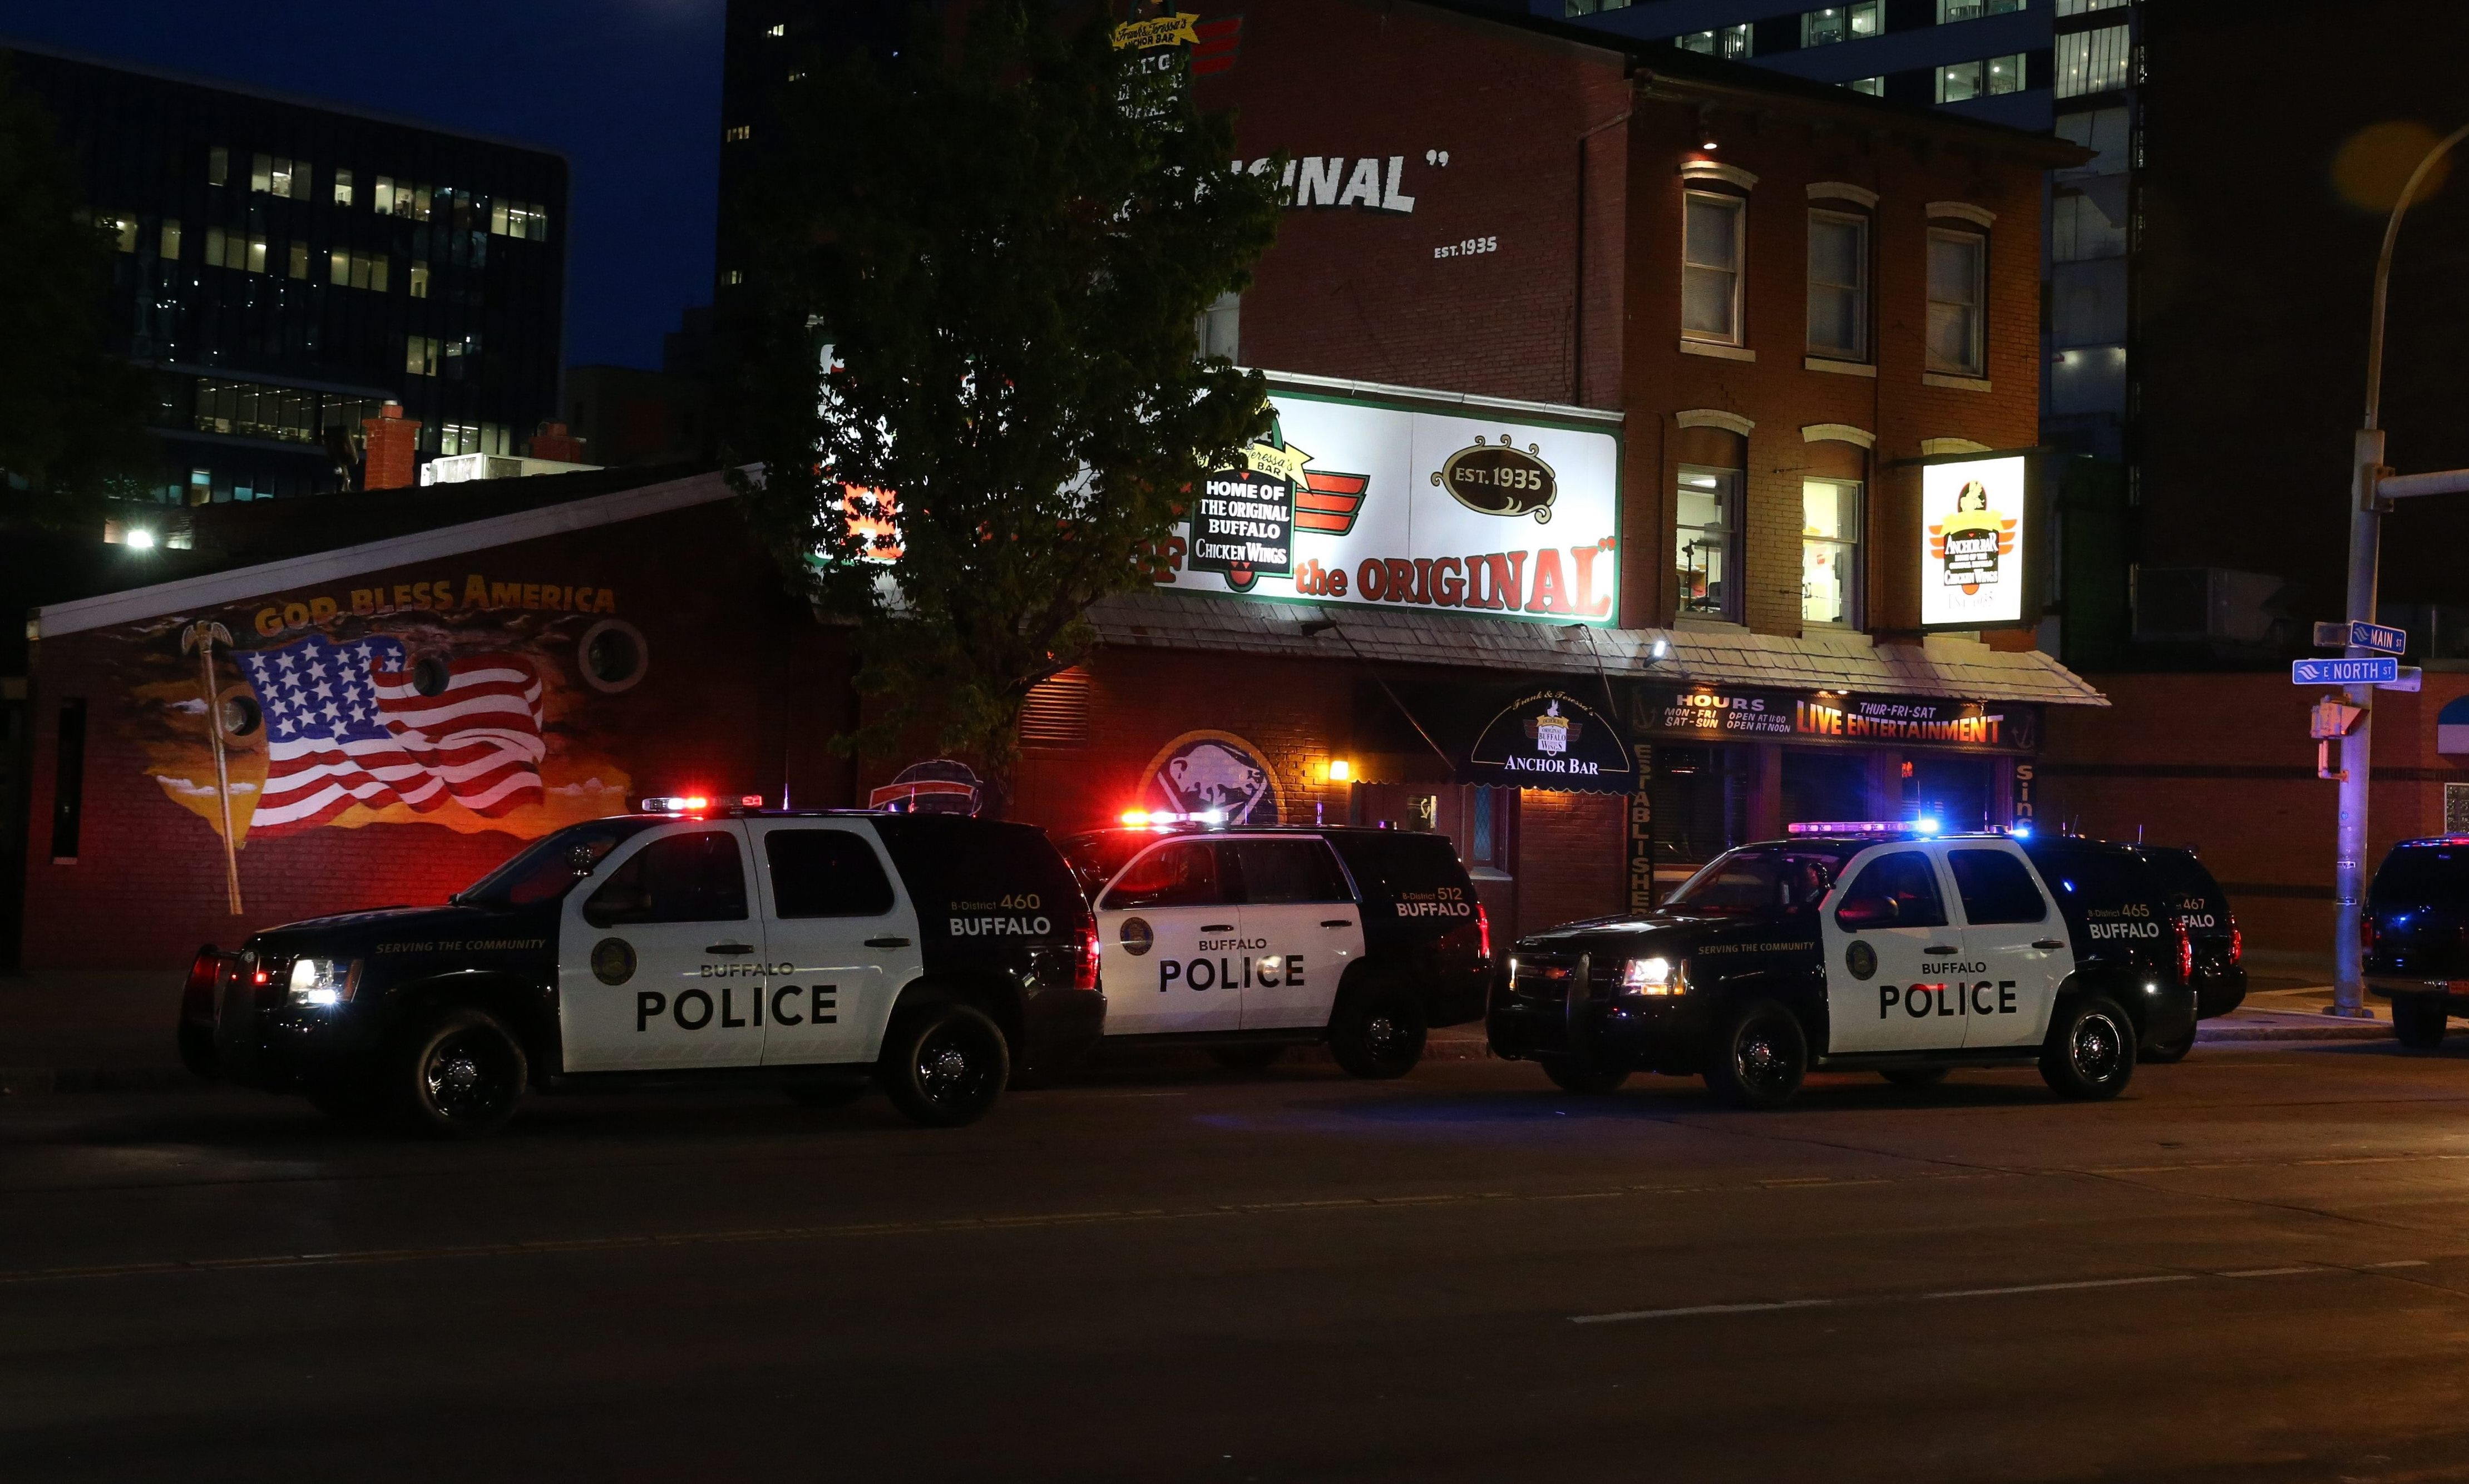 Police were on the scene Friday night after a shooting took place inside the Anchor Bar. (James P. McCoy/ Buffalo News)